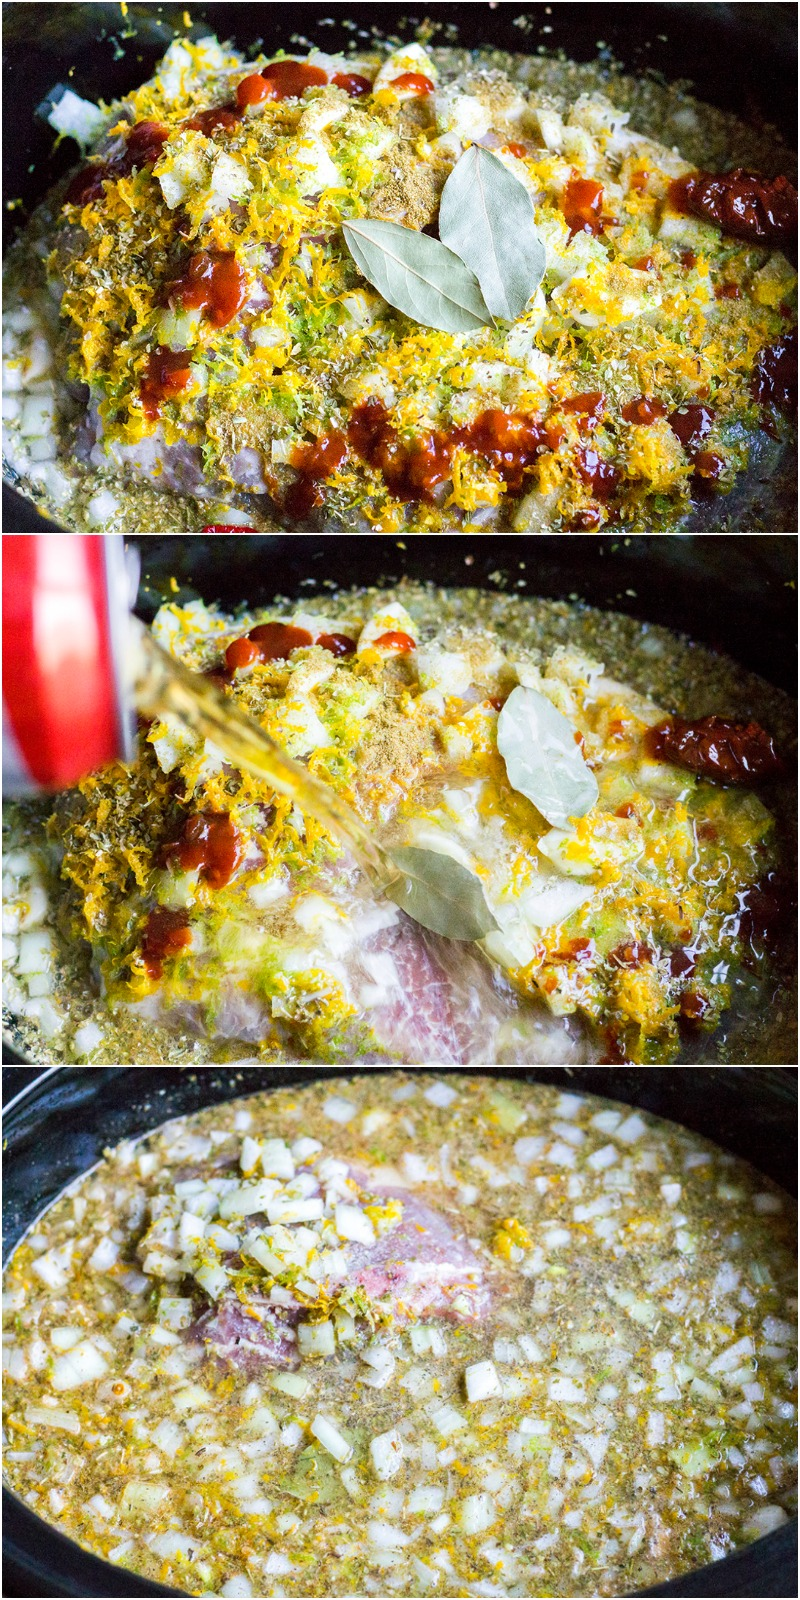 steps to make Cuervo & Tecate Slow Cooker Carnitas